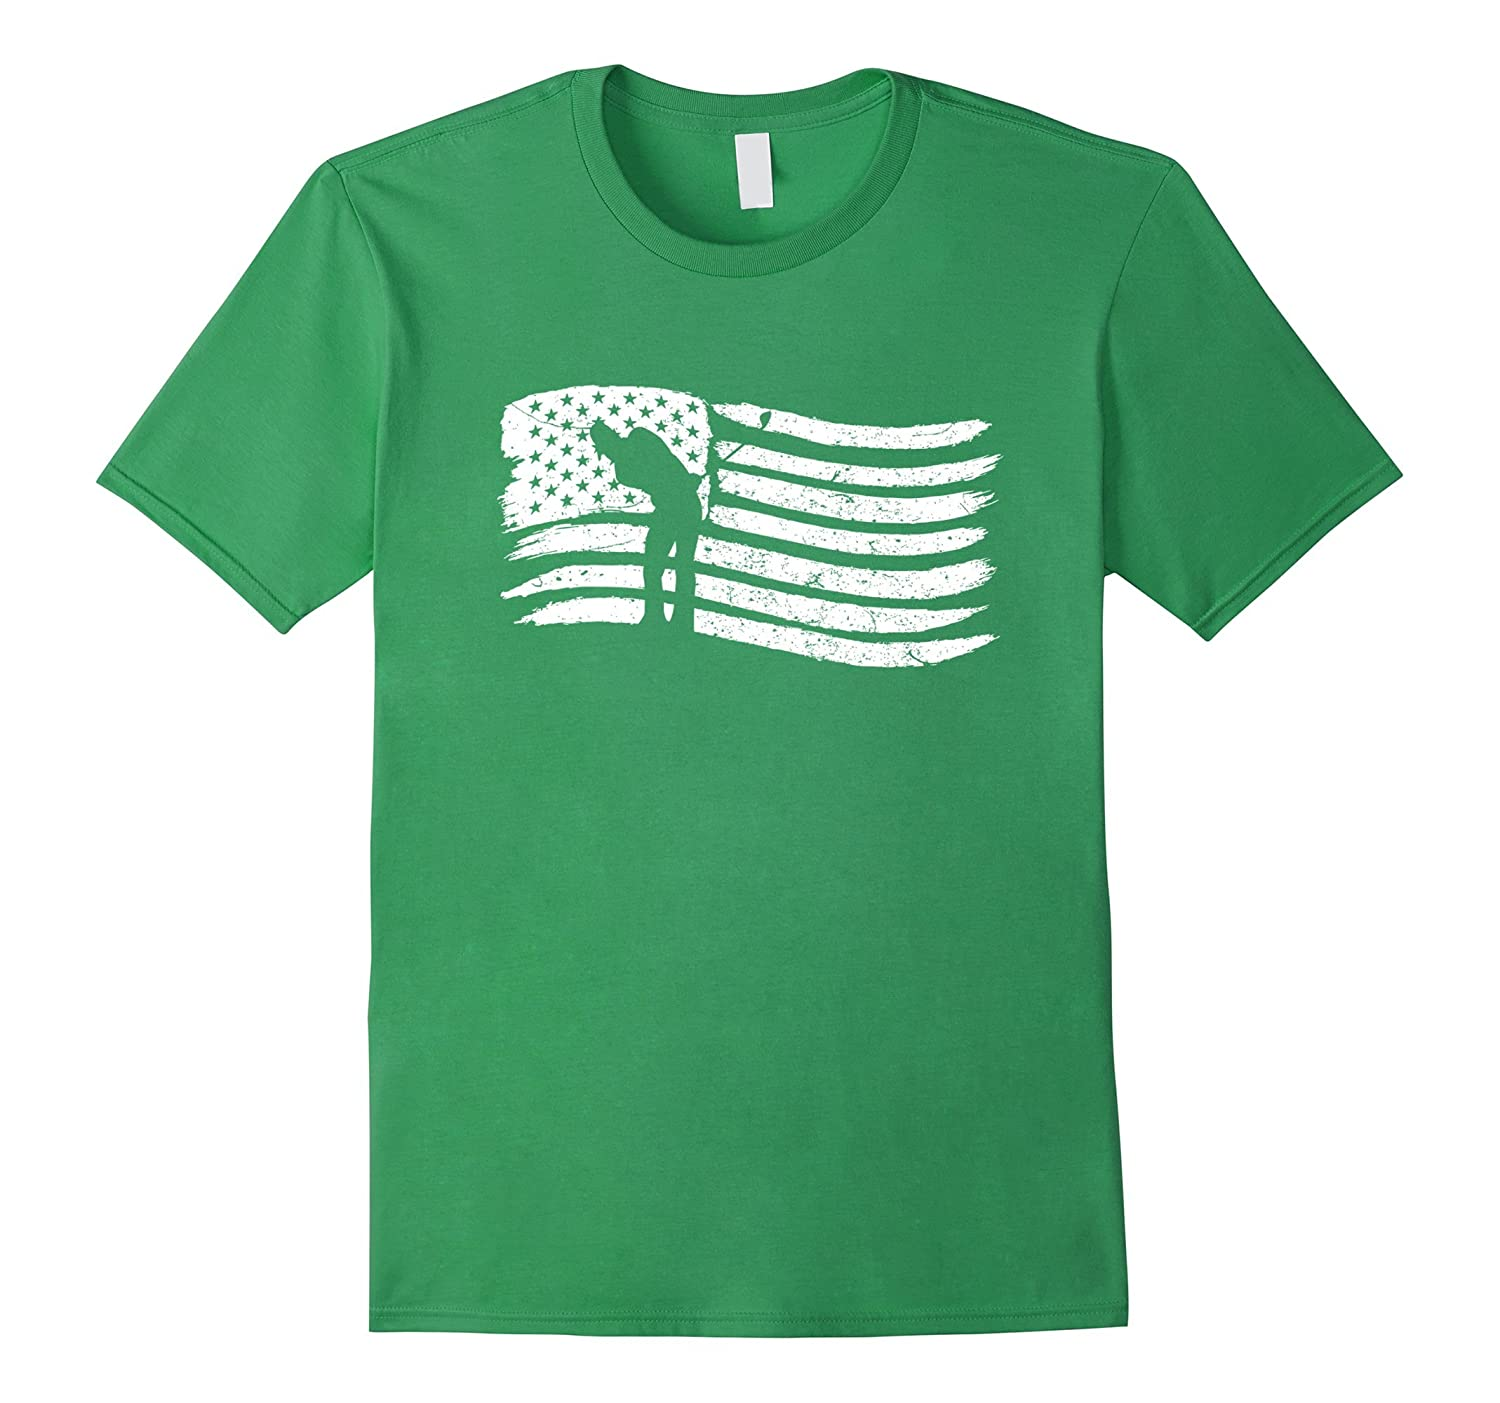 American Flag T-Shirt For Golf Player Patriotic